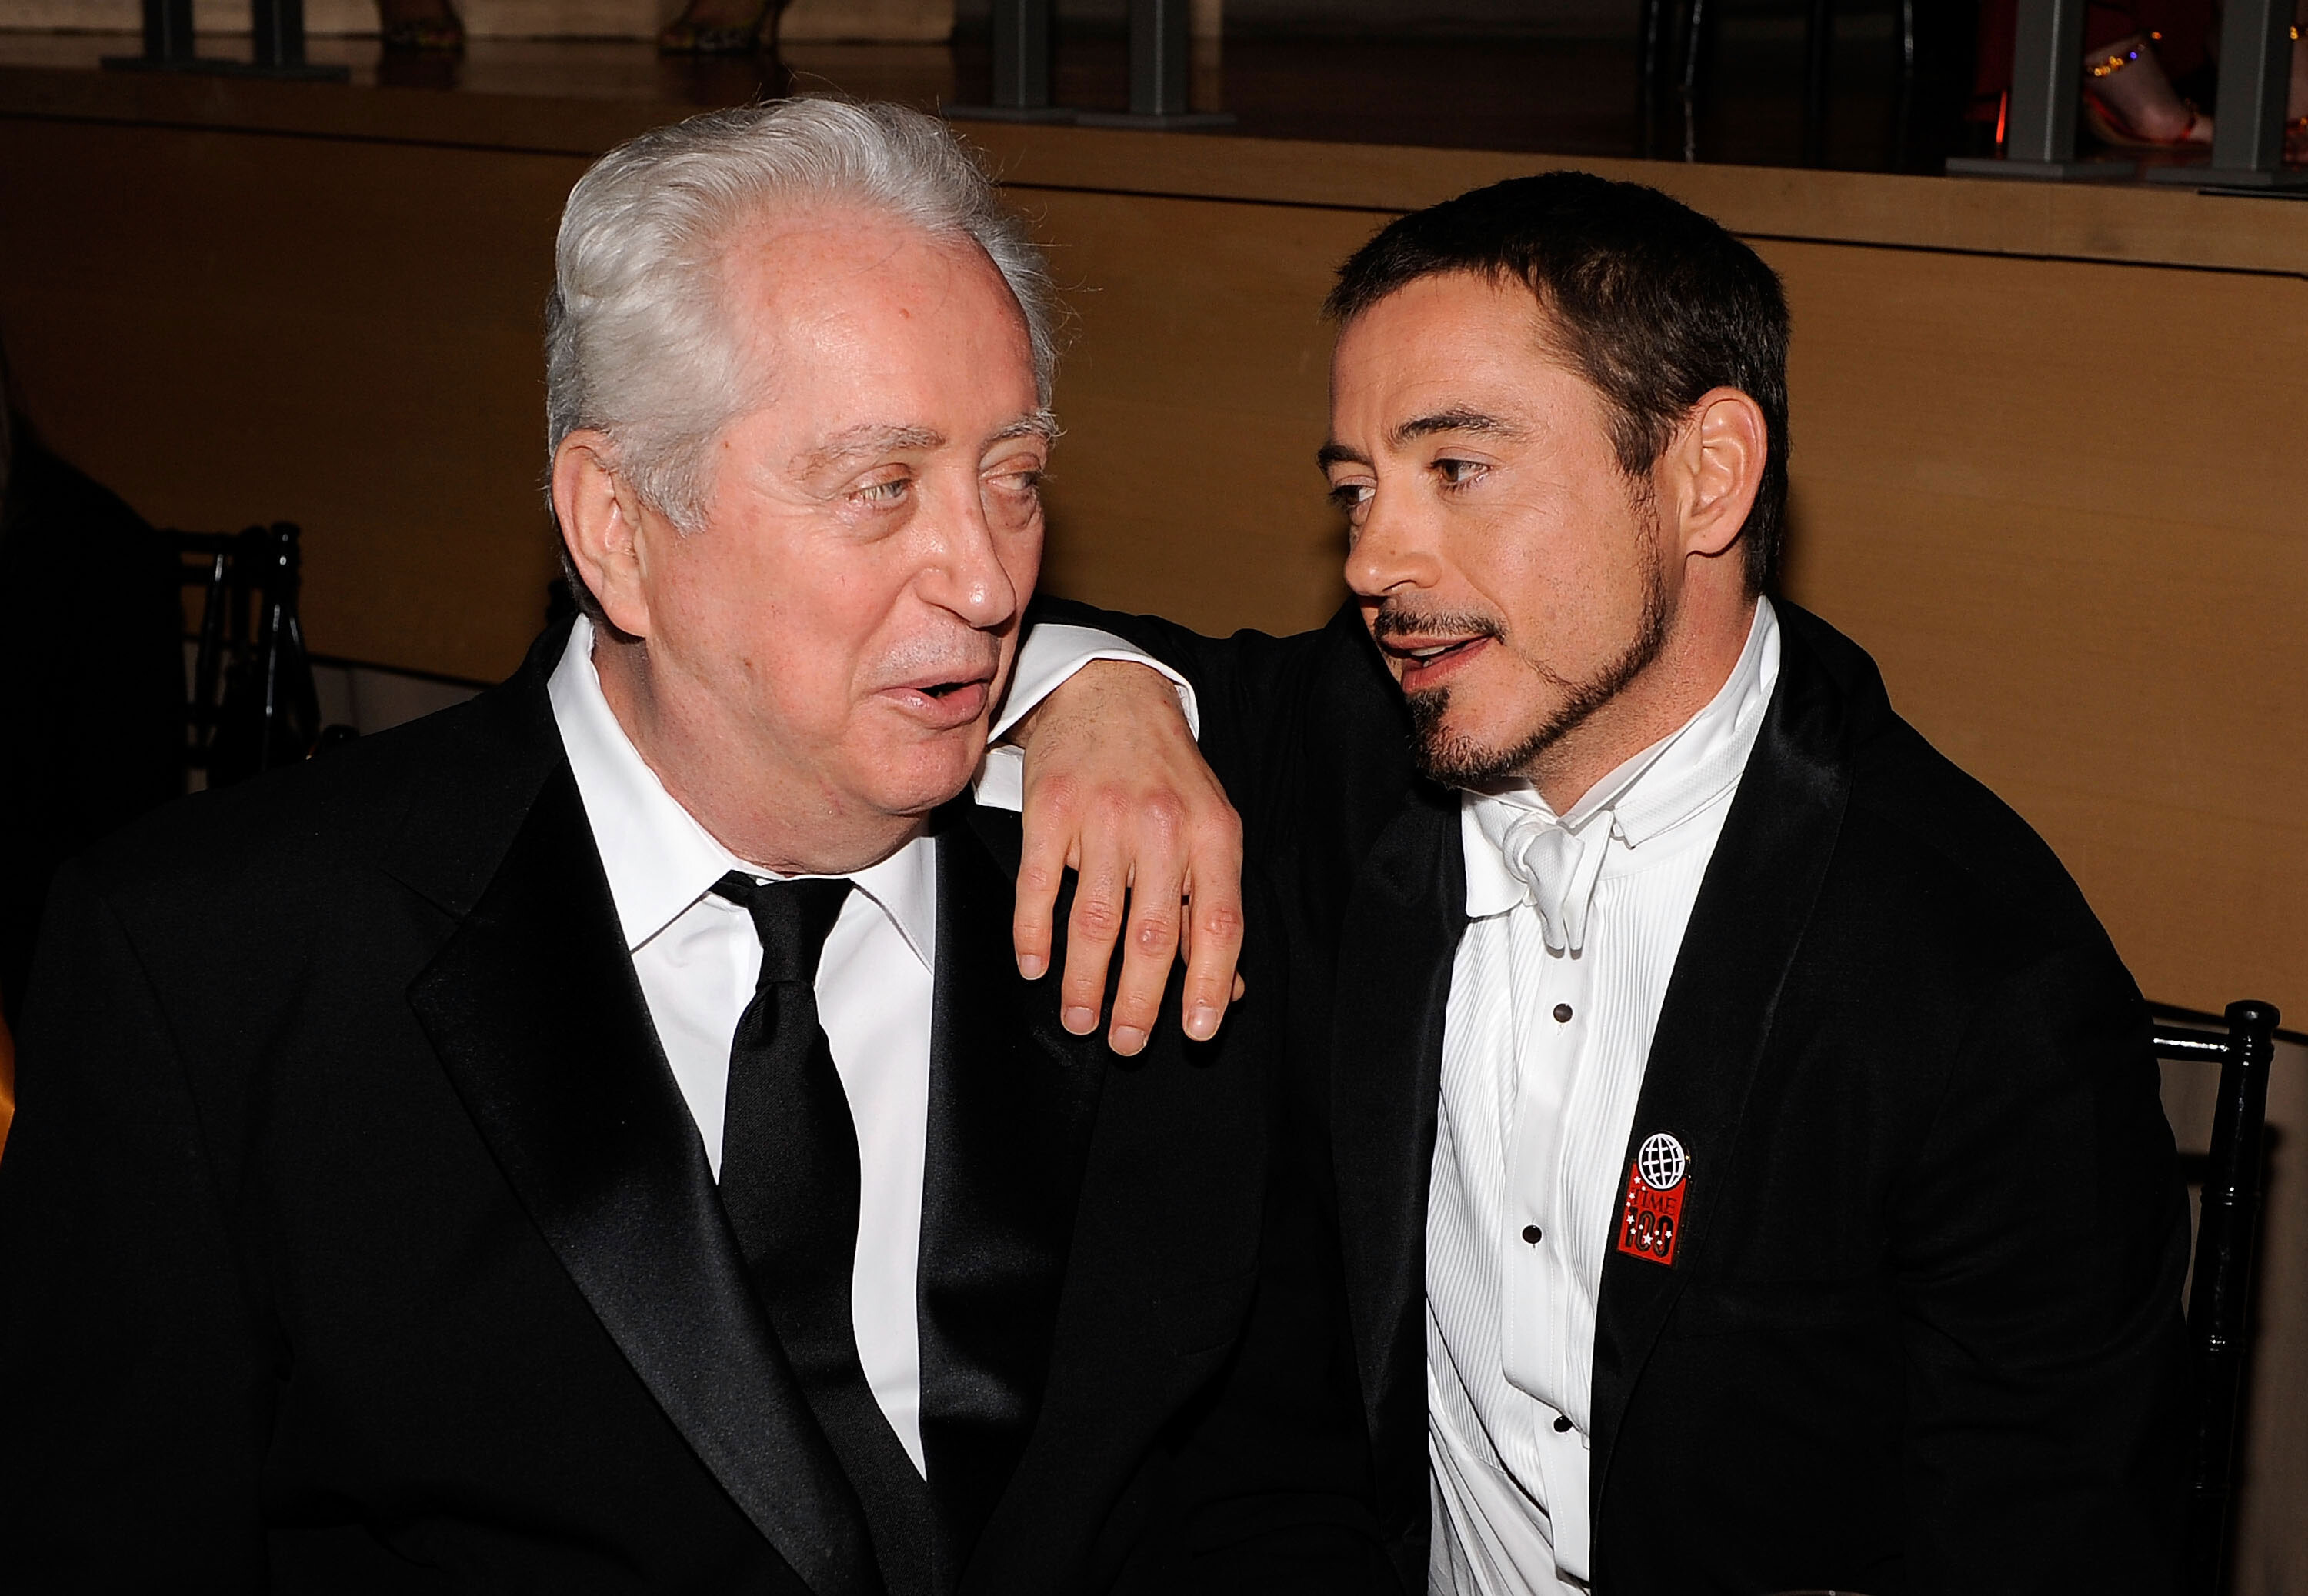 Robert Downey Sr., director and father of Robert Downey Jr., has died